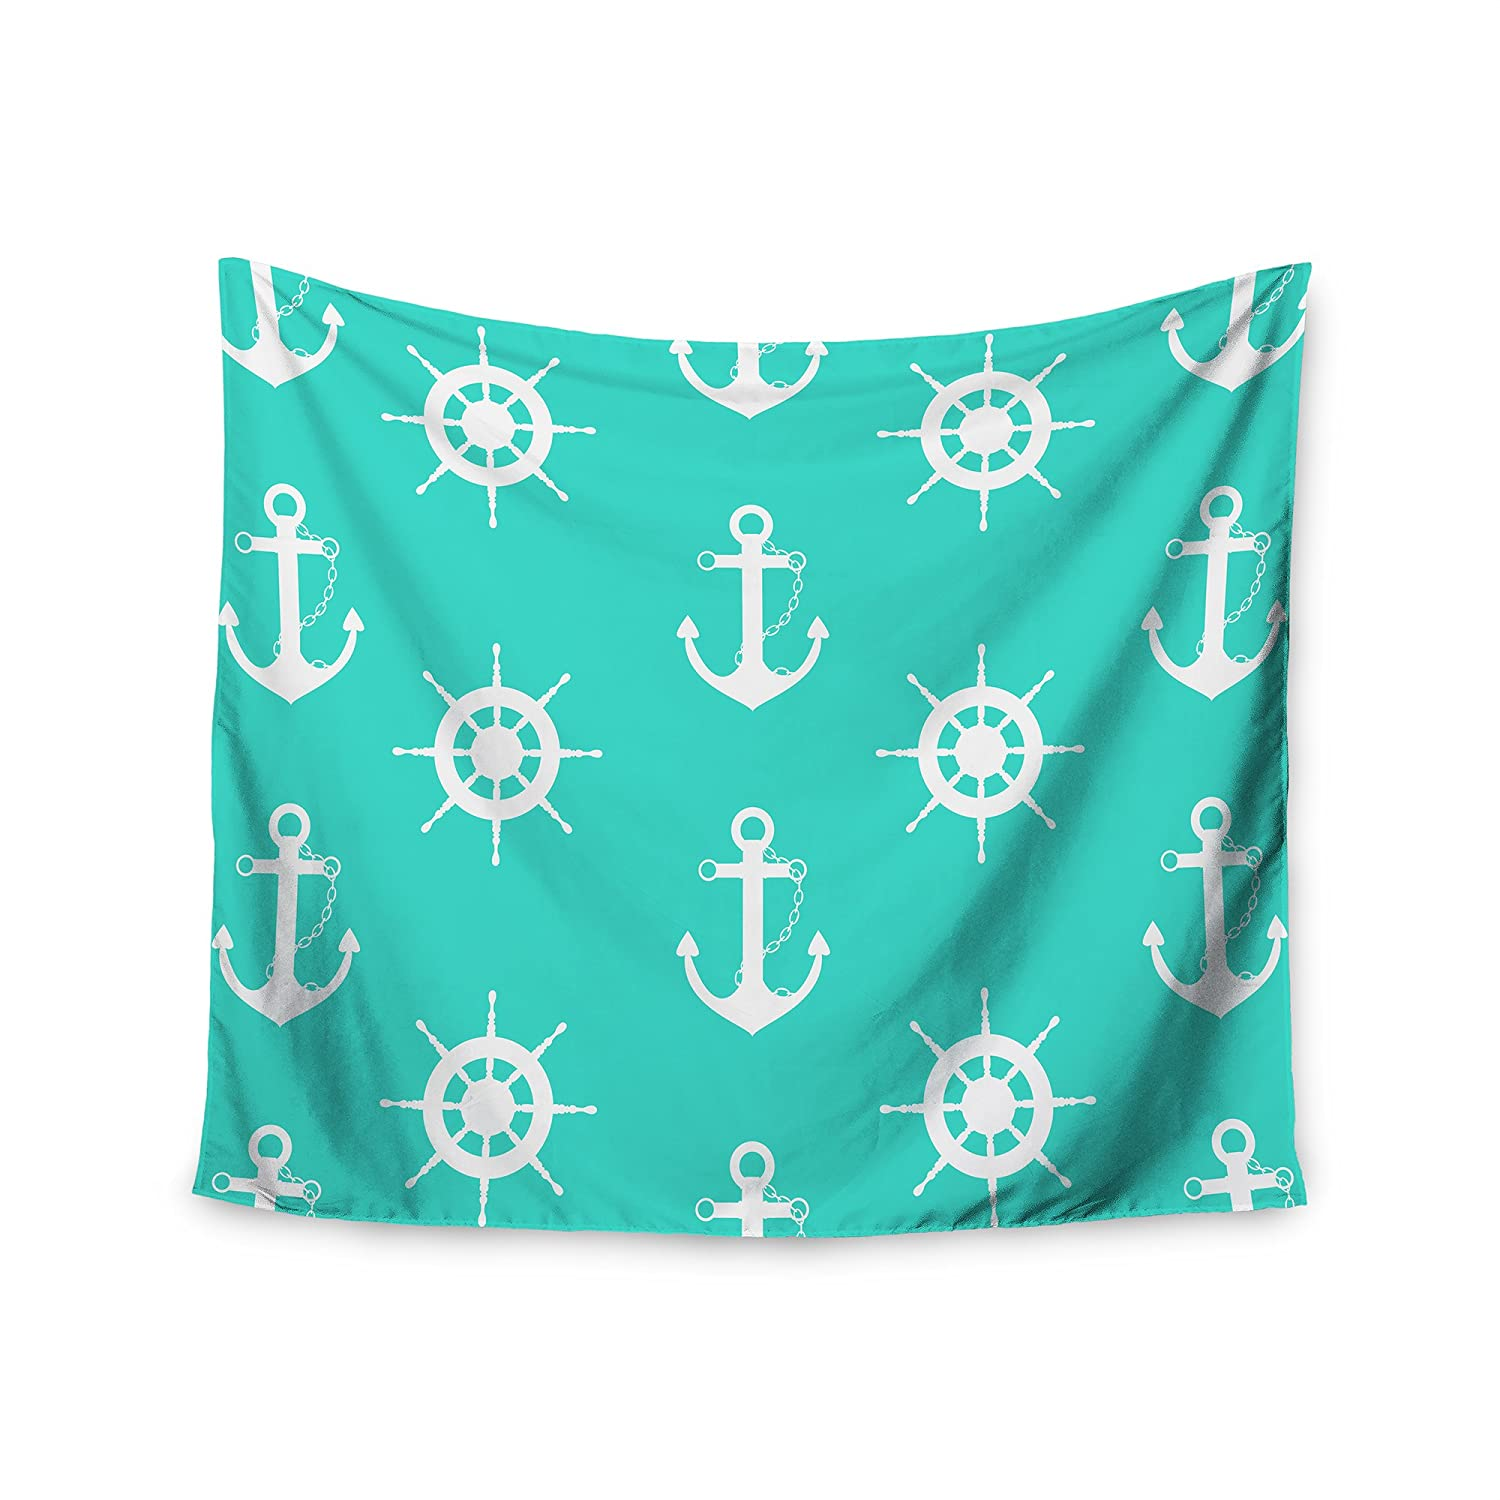 68 x 80 Wall Tapestry Kess InHouse afe Images Anchor and Helm Wheel Teal White Illustration